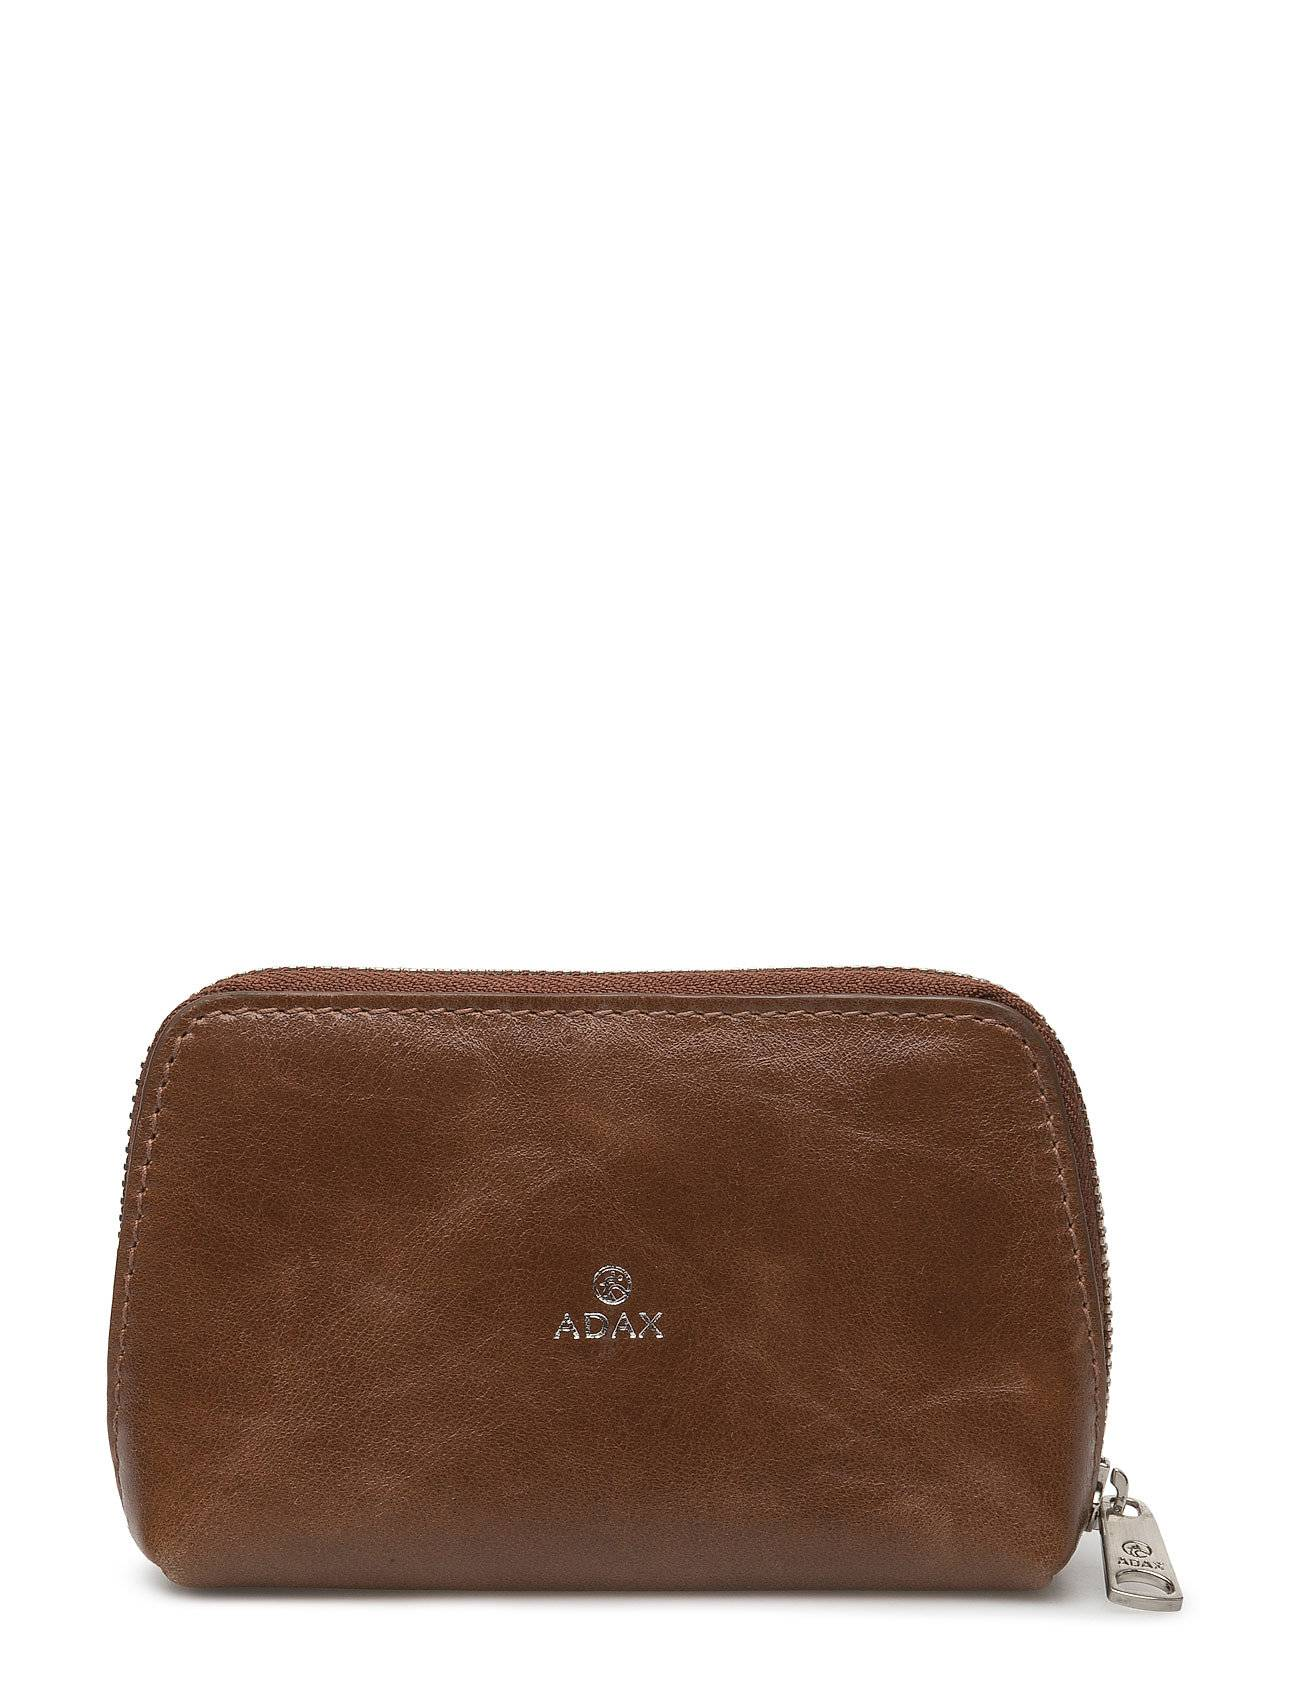 Adax Salerno Purse Abelone